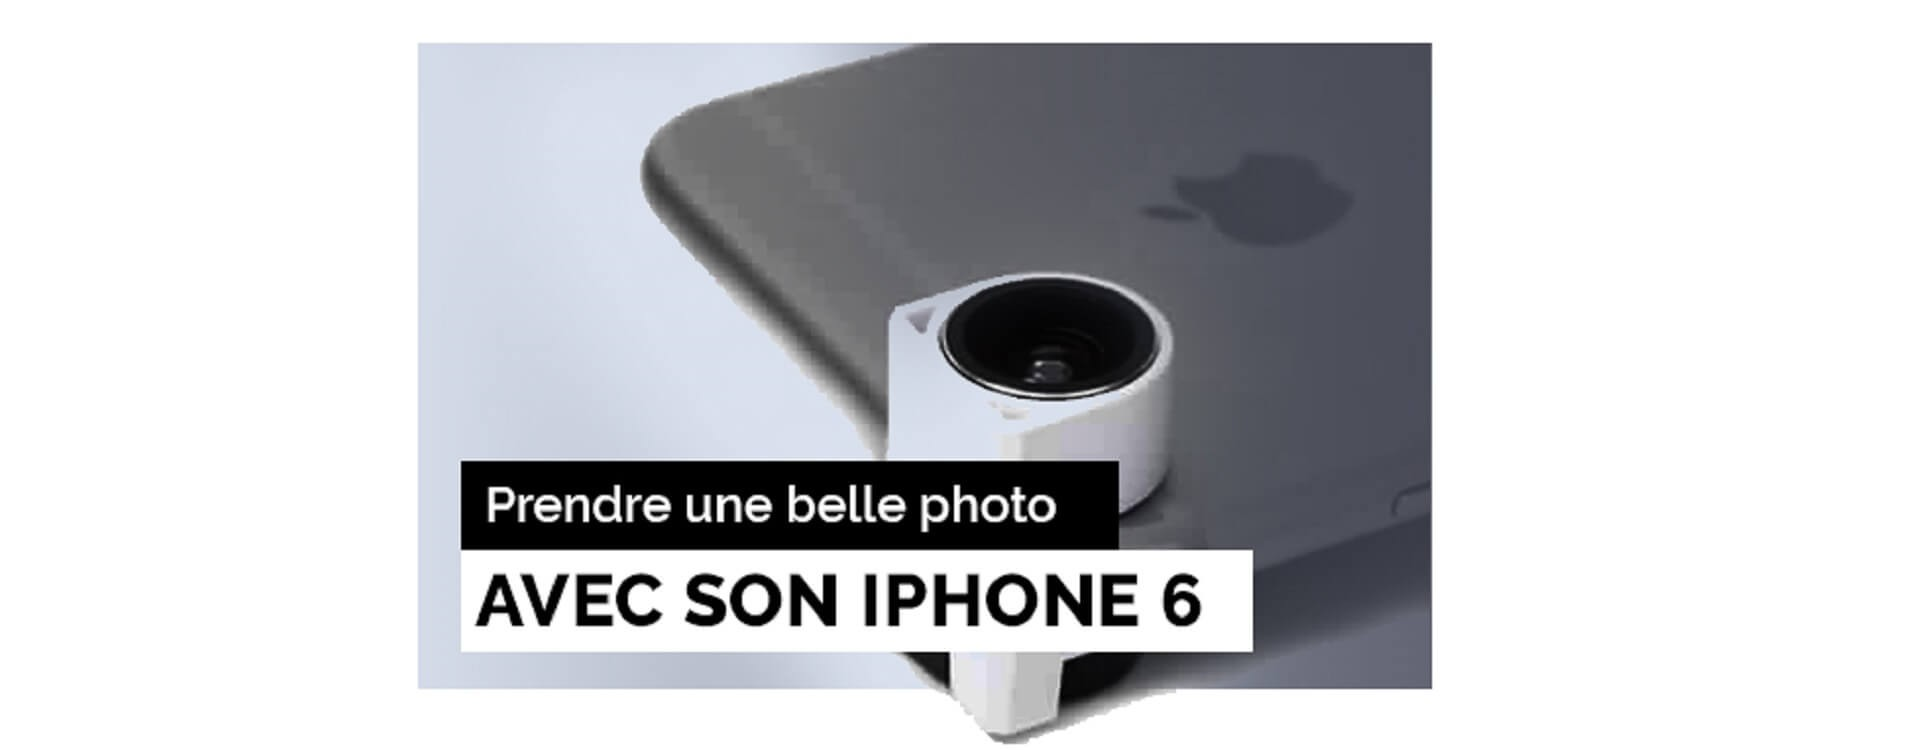 comment r u00e9aliser une belle photo avec son iphone 6    6 plus